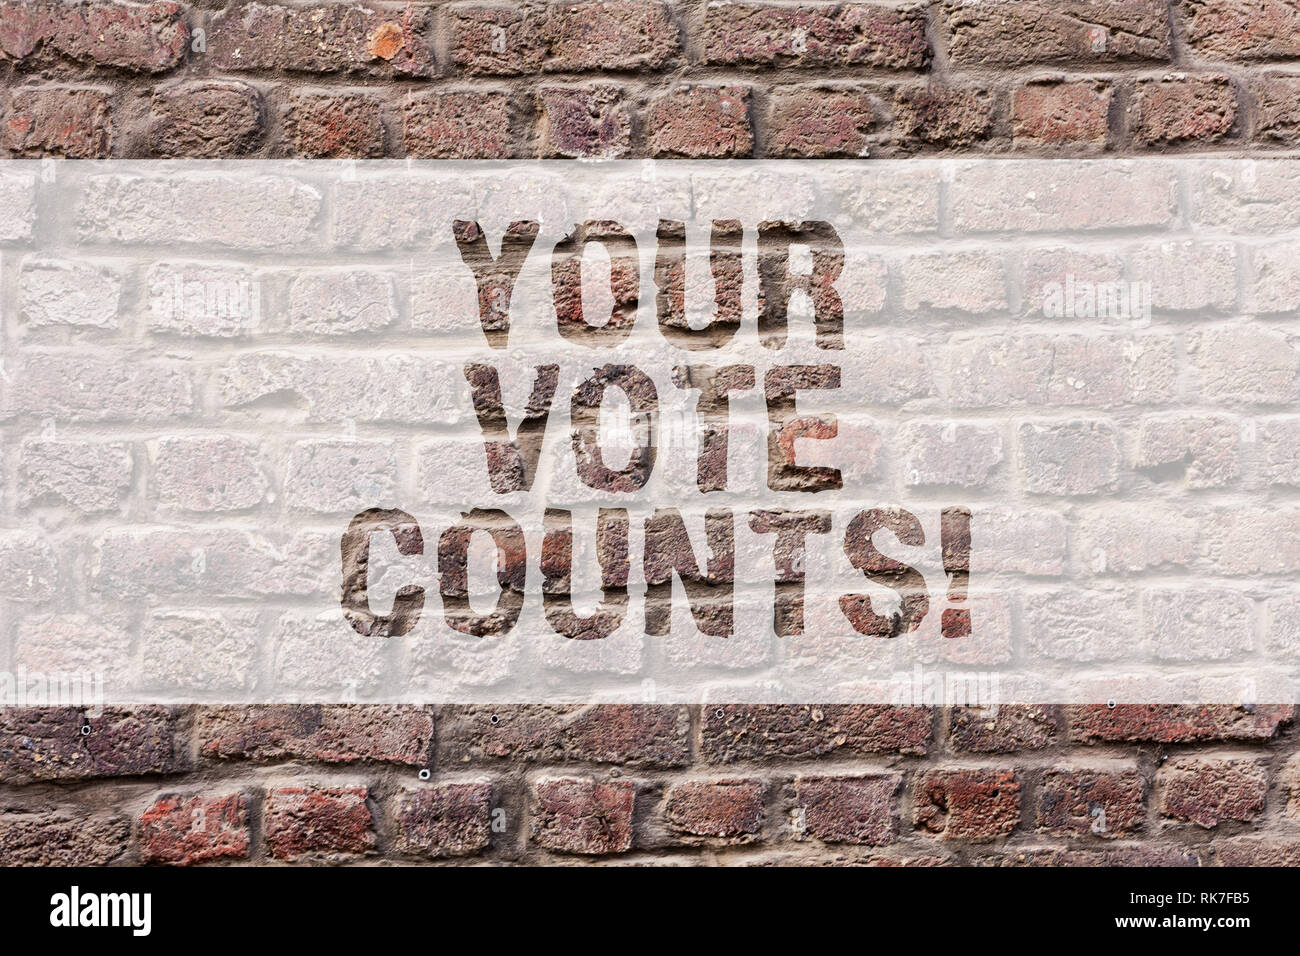 Word writing text Your Vote Counts. Business concept for Make an election choose whoever you think is better Brick Wall art like Graffiti motivational - Stock Image